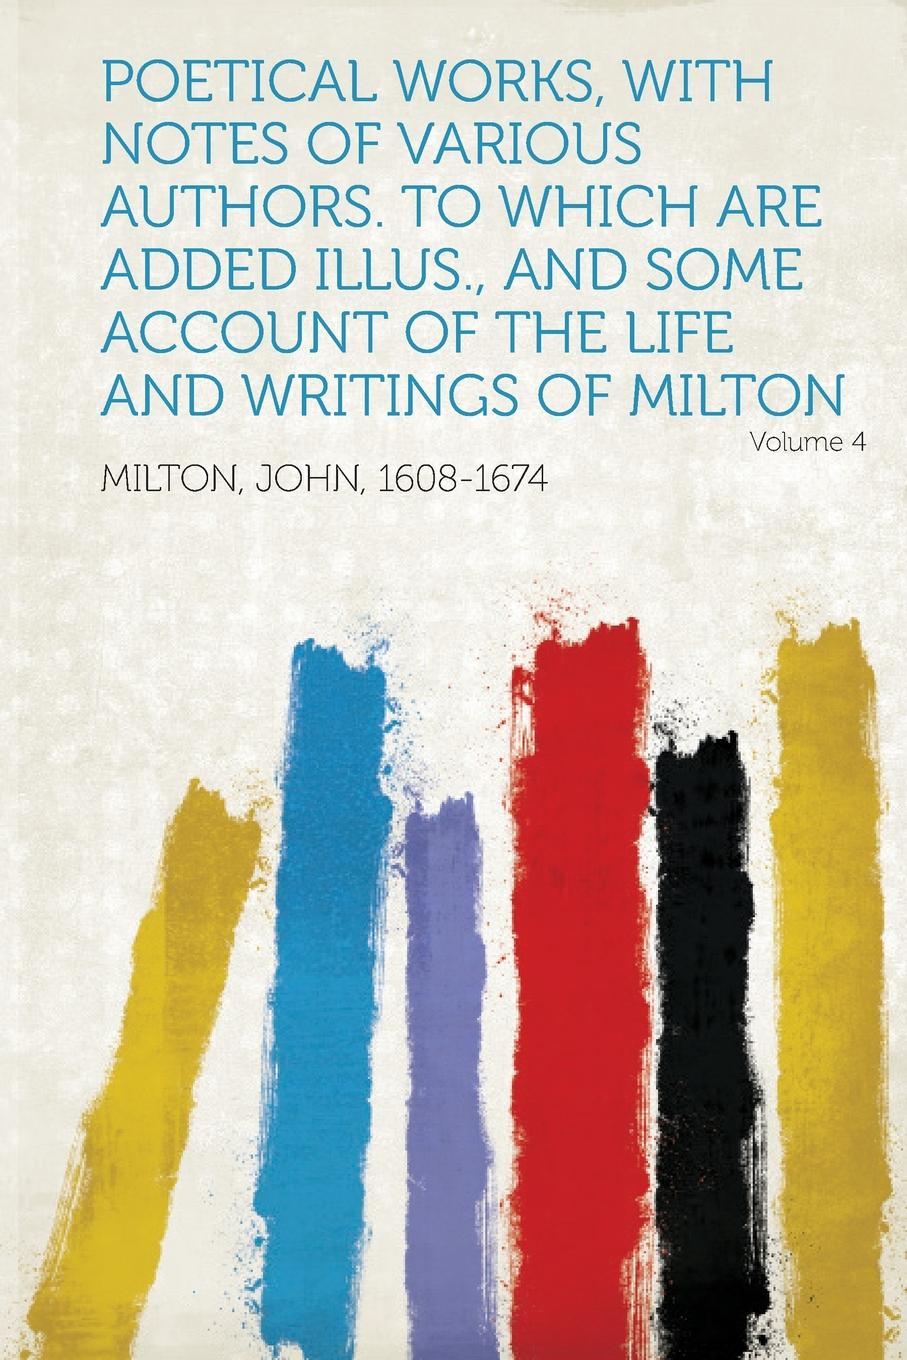 John Milton Poetical Works, with Notes of Various Authors. to Which Are Added Illus., and Some Account of the Life and Writings of Milton Volume 4 milton john remarks on johnson s life of milton to which are added milton s tractate of education and areopagitica